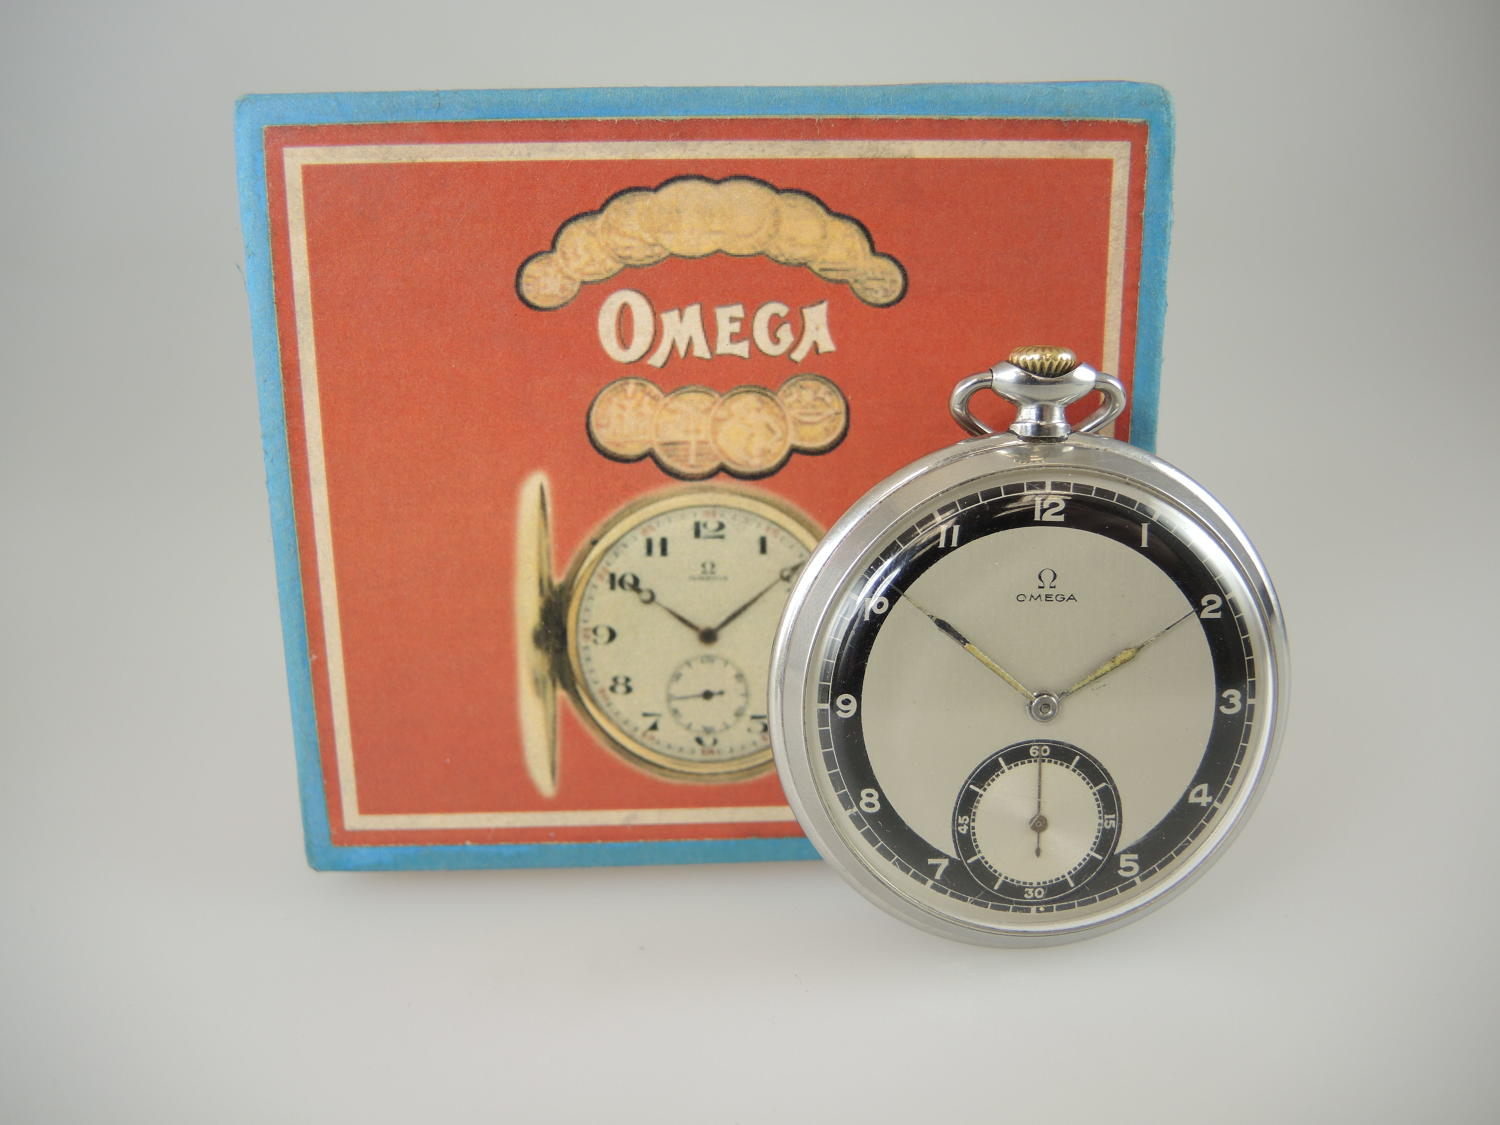 Vintage Omega pocket watch with a Two Tone dial and Box c1939